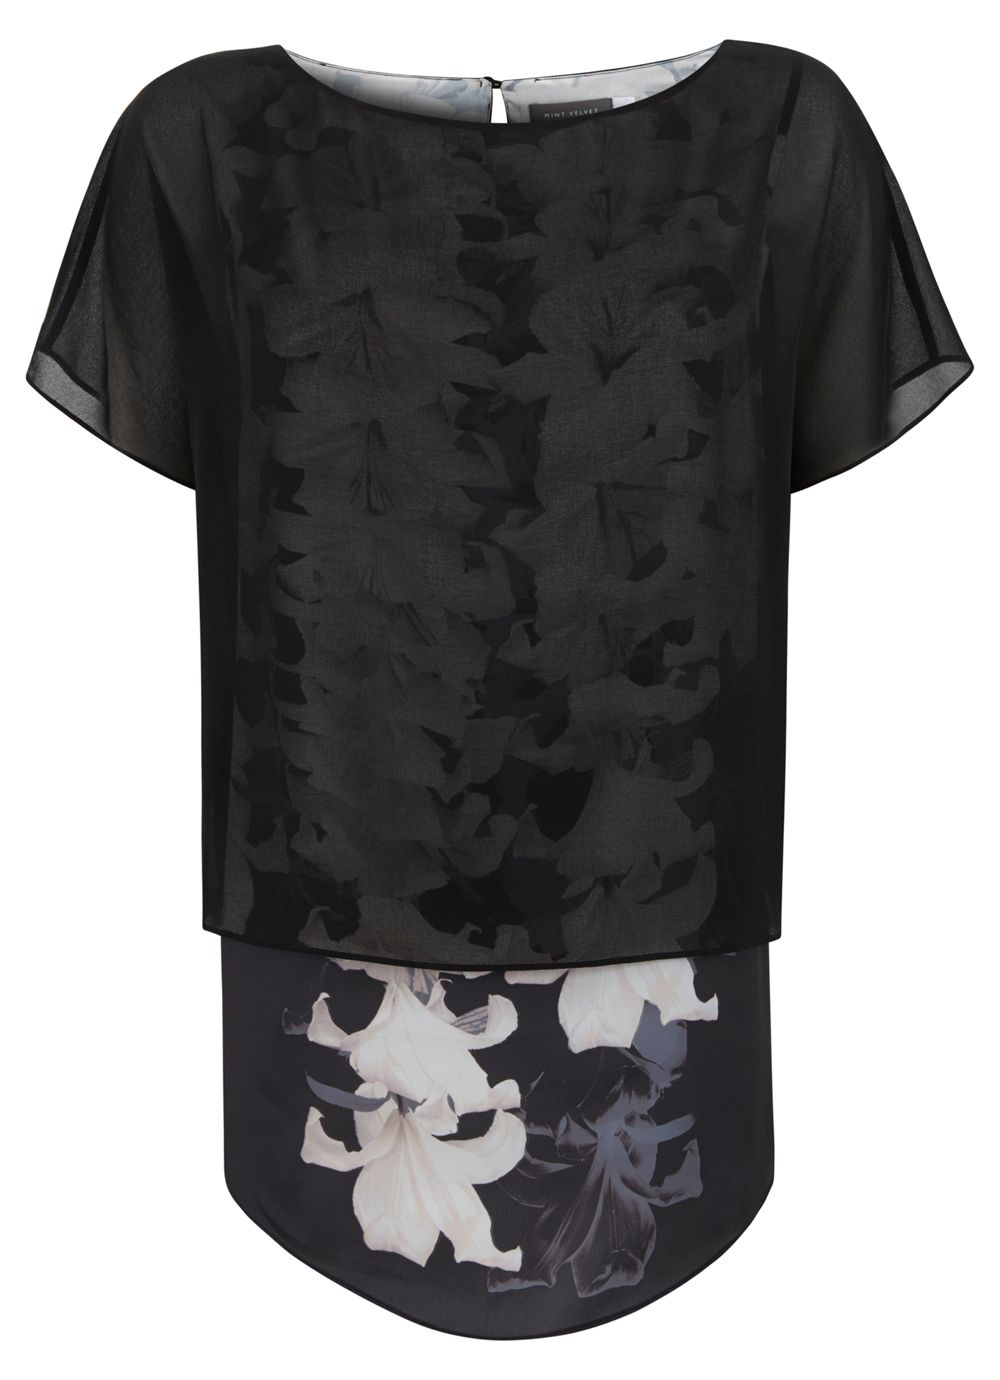 Lily print layered t-shirt